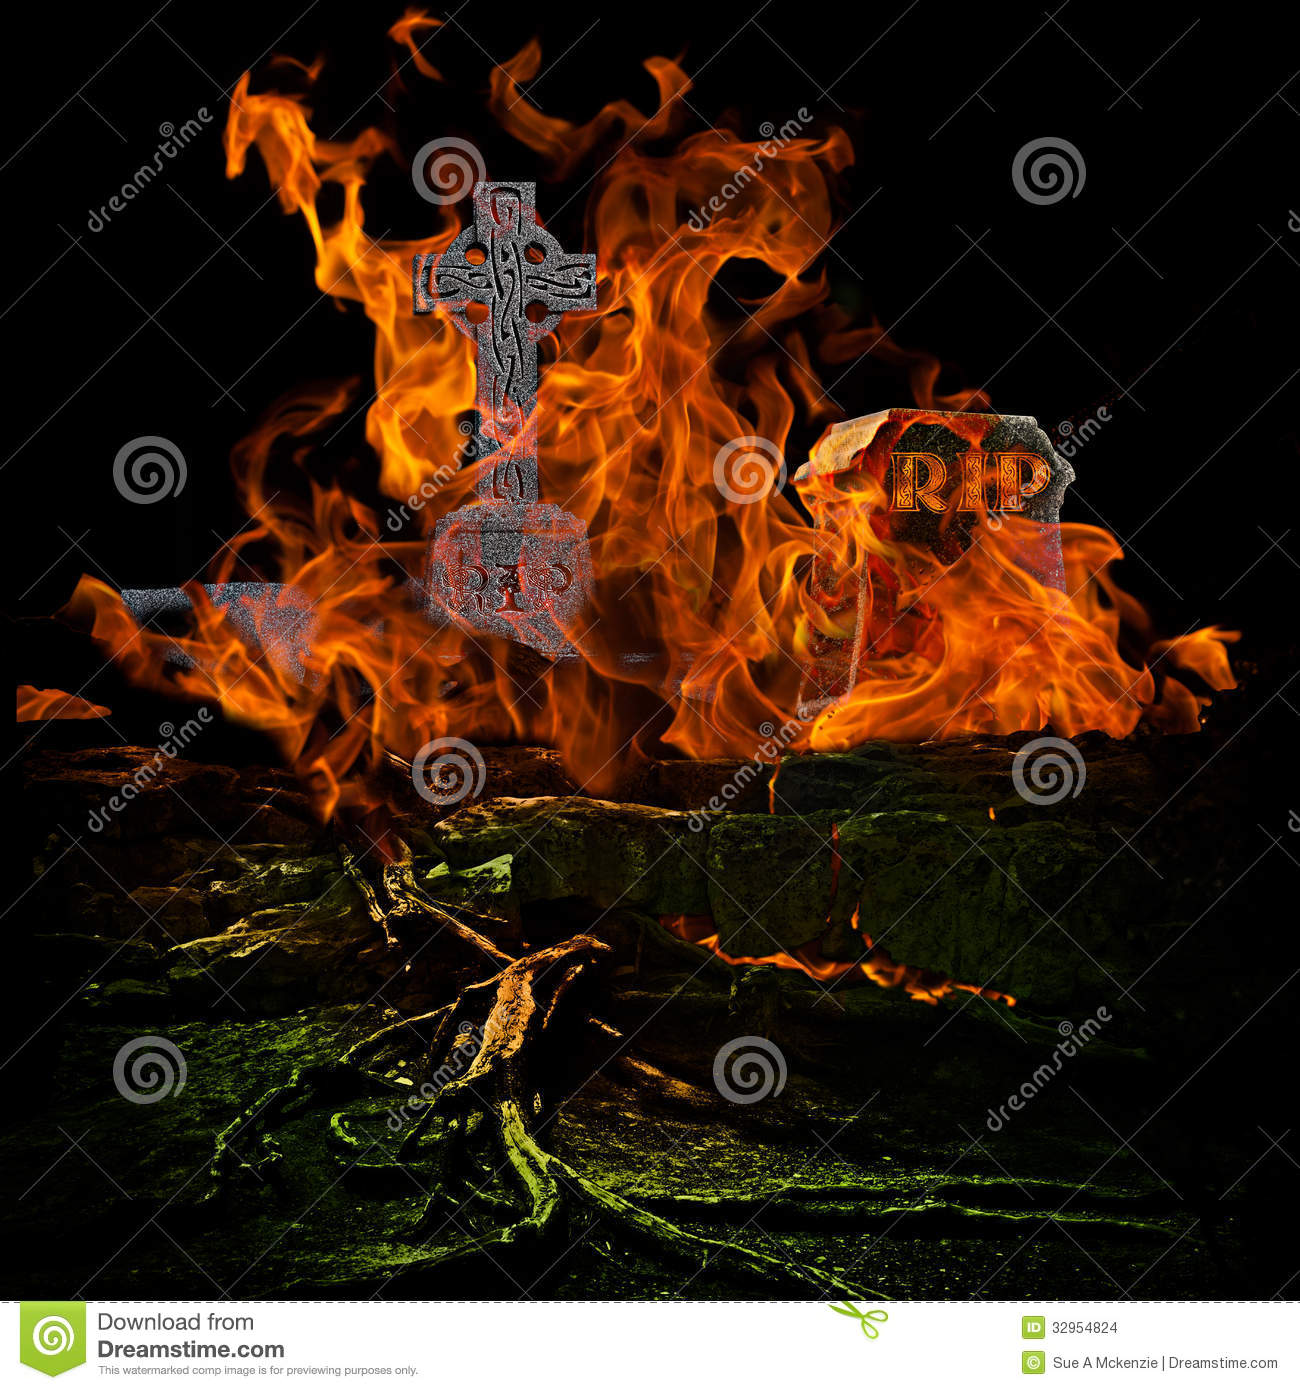 Spooky Scary Graveyard With Burining Fire And Flames